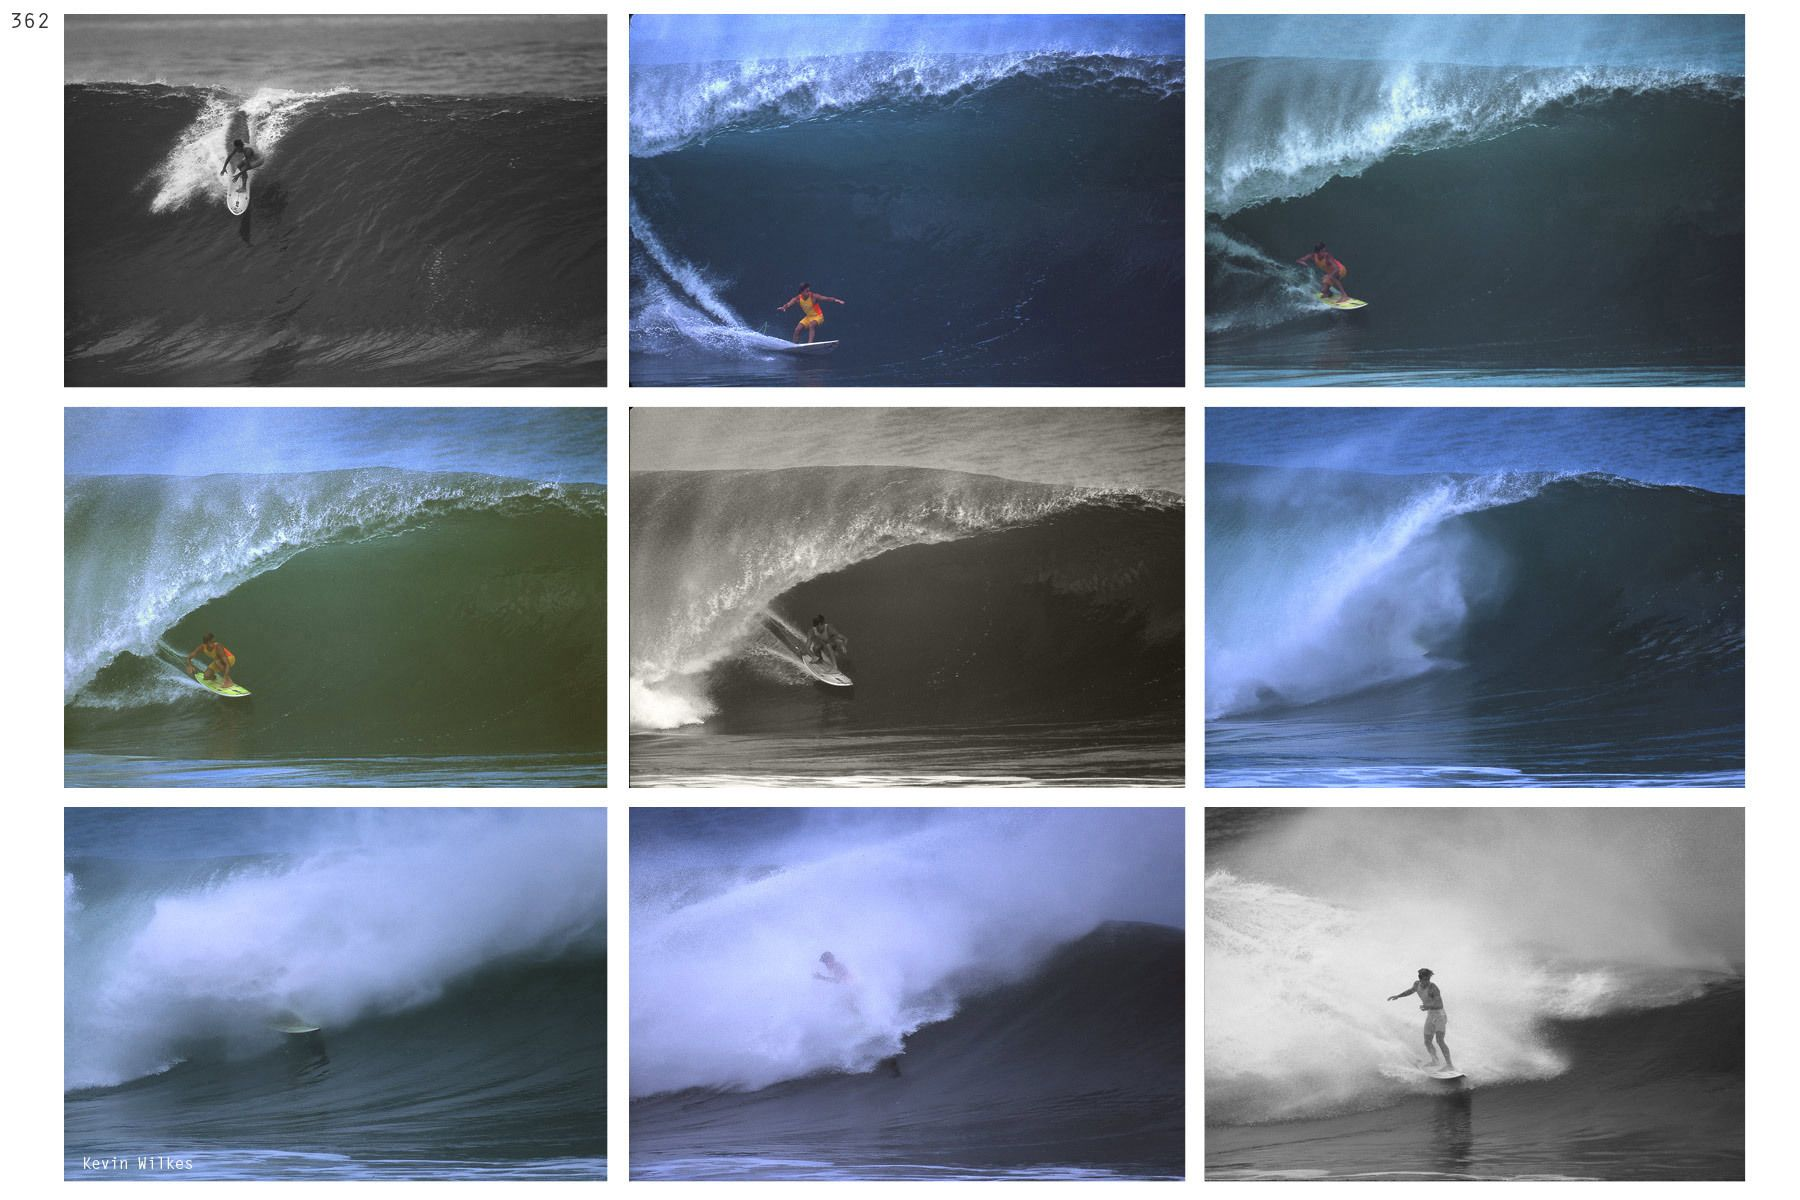 Tom Curren. Pipeline, December 1987. Kevin Wilkes copyright 2019.